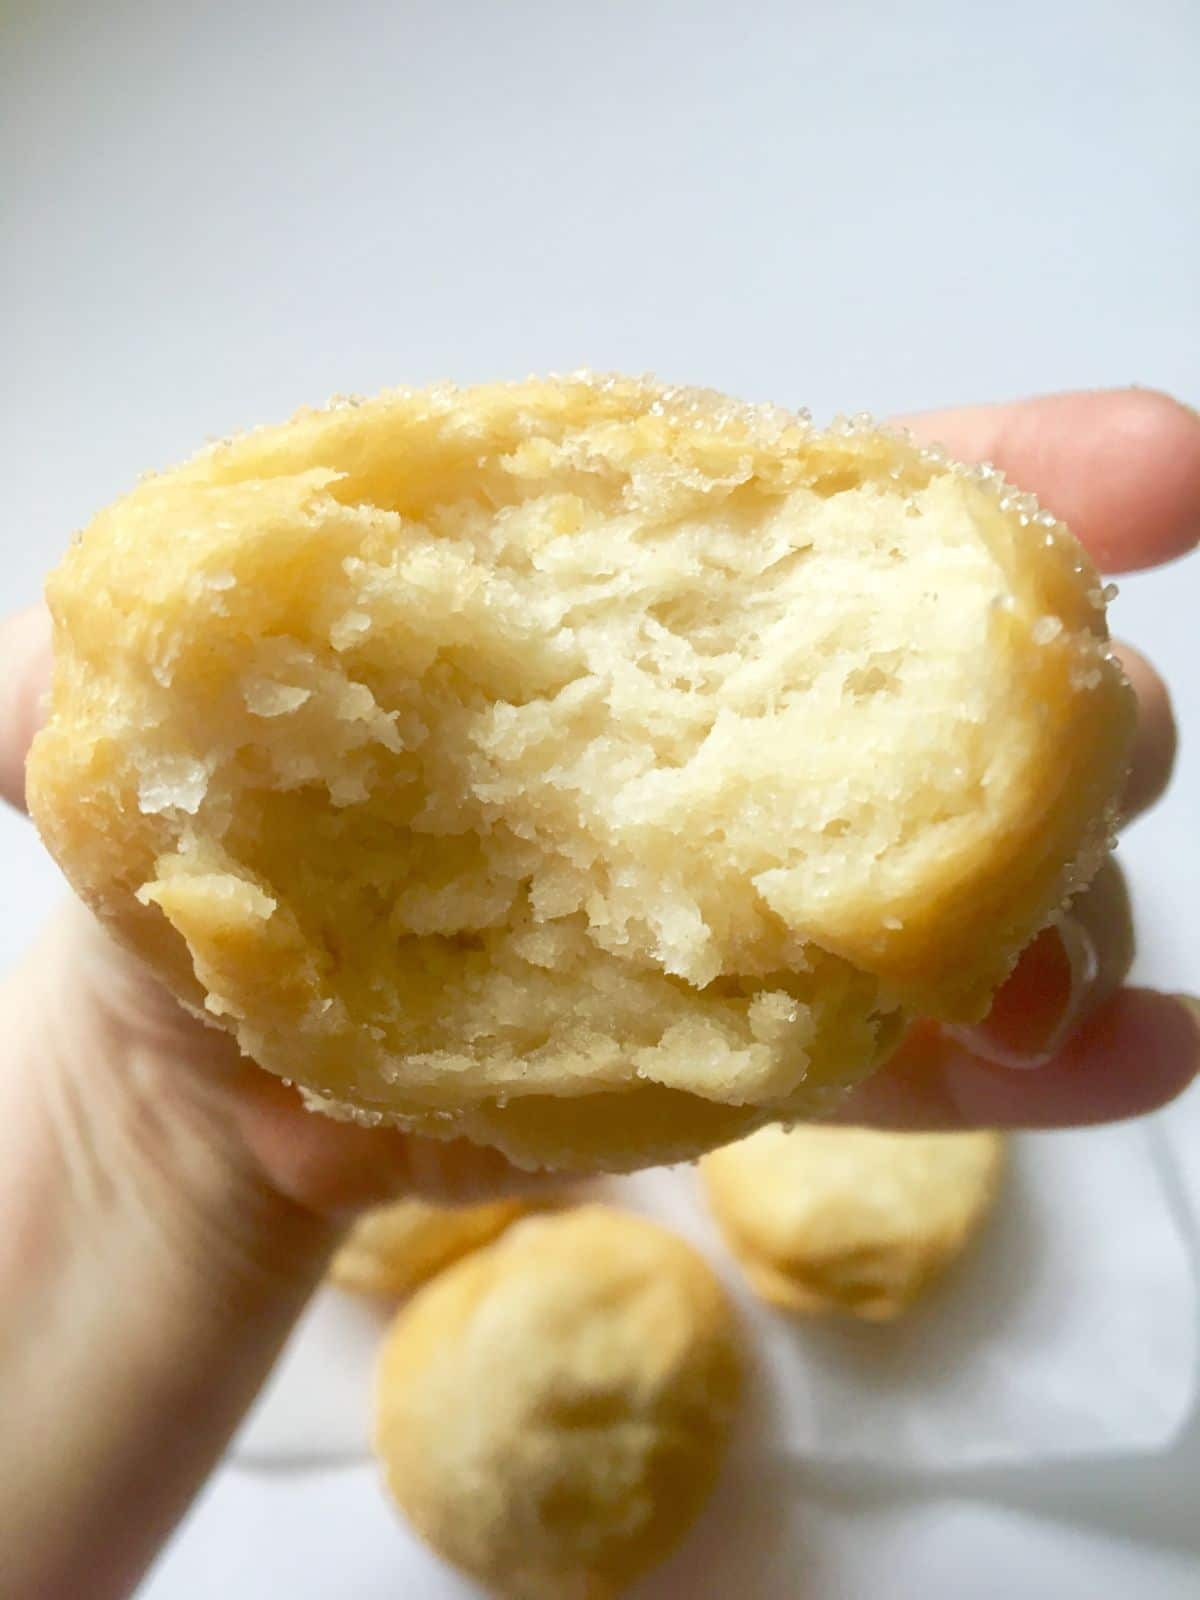 a hand holds a chinese donut toward the camera with a bite taken out of it